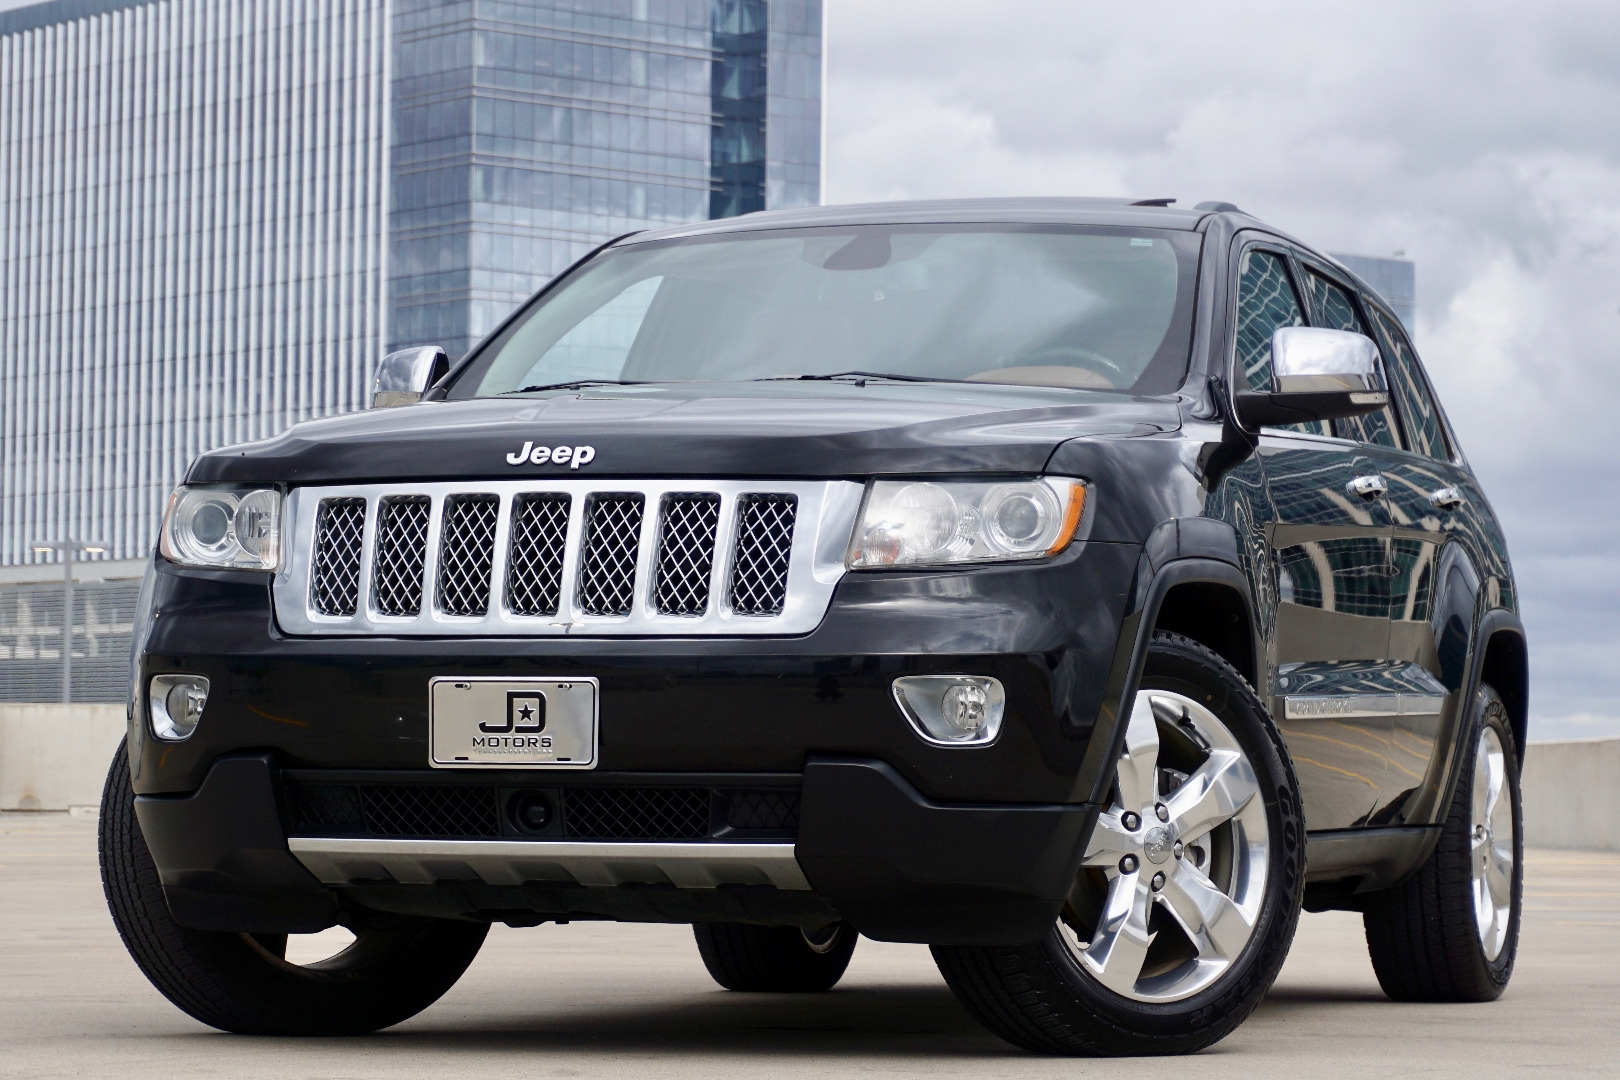 2011 Jeep Grand Cherokee Overland Jd Motors Llc Dealership In Austin